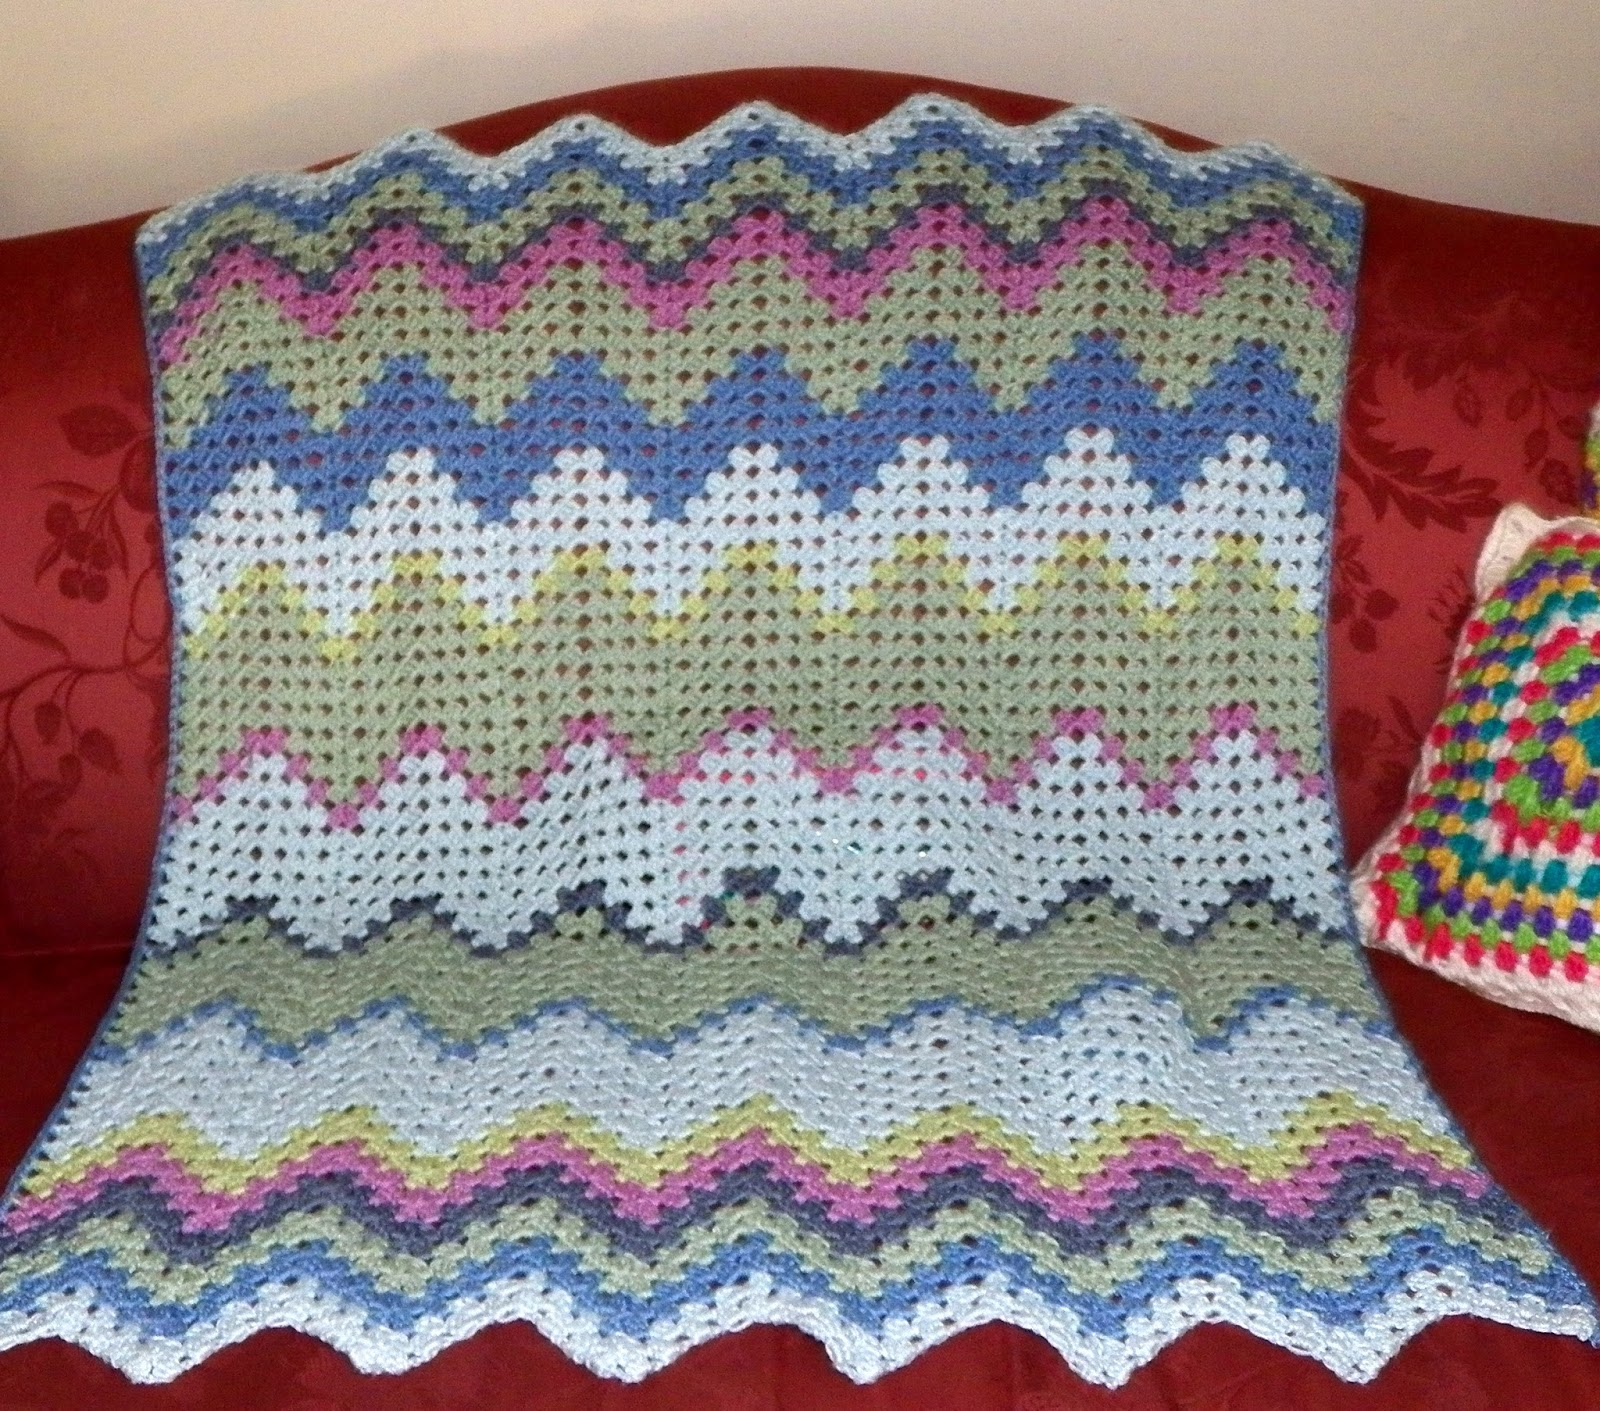 Crochet attic new baby granny ripple afghan tah dah new baby granny ripple afghan tah dah bankloansurffo Images